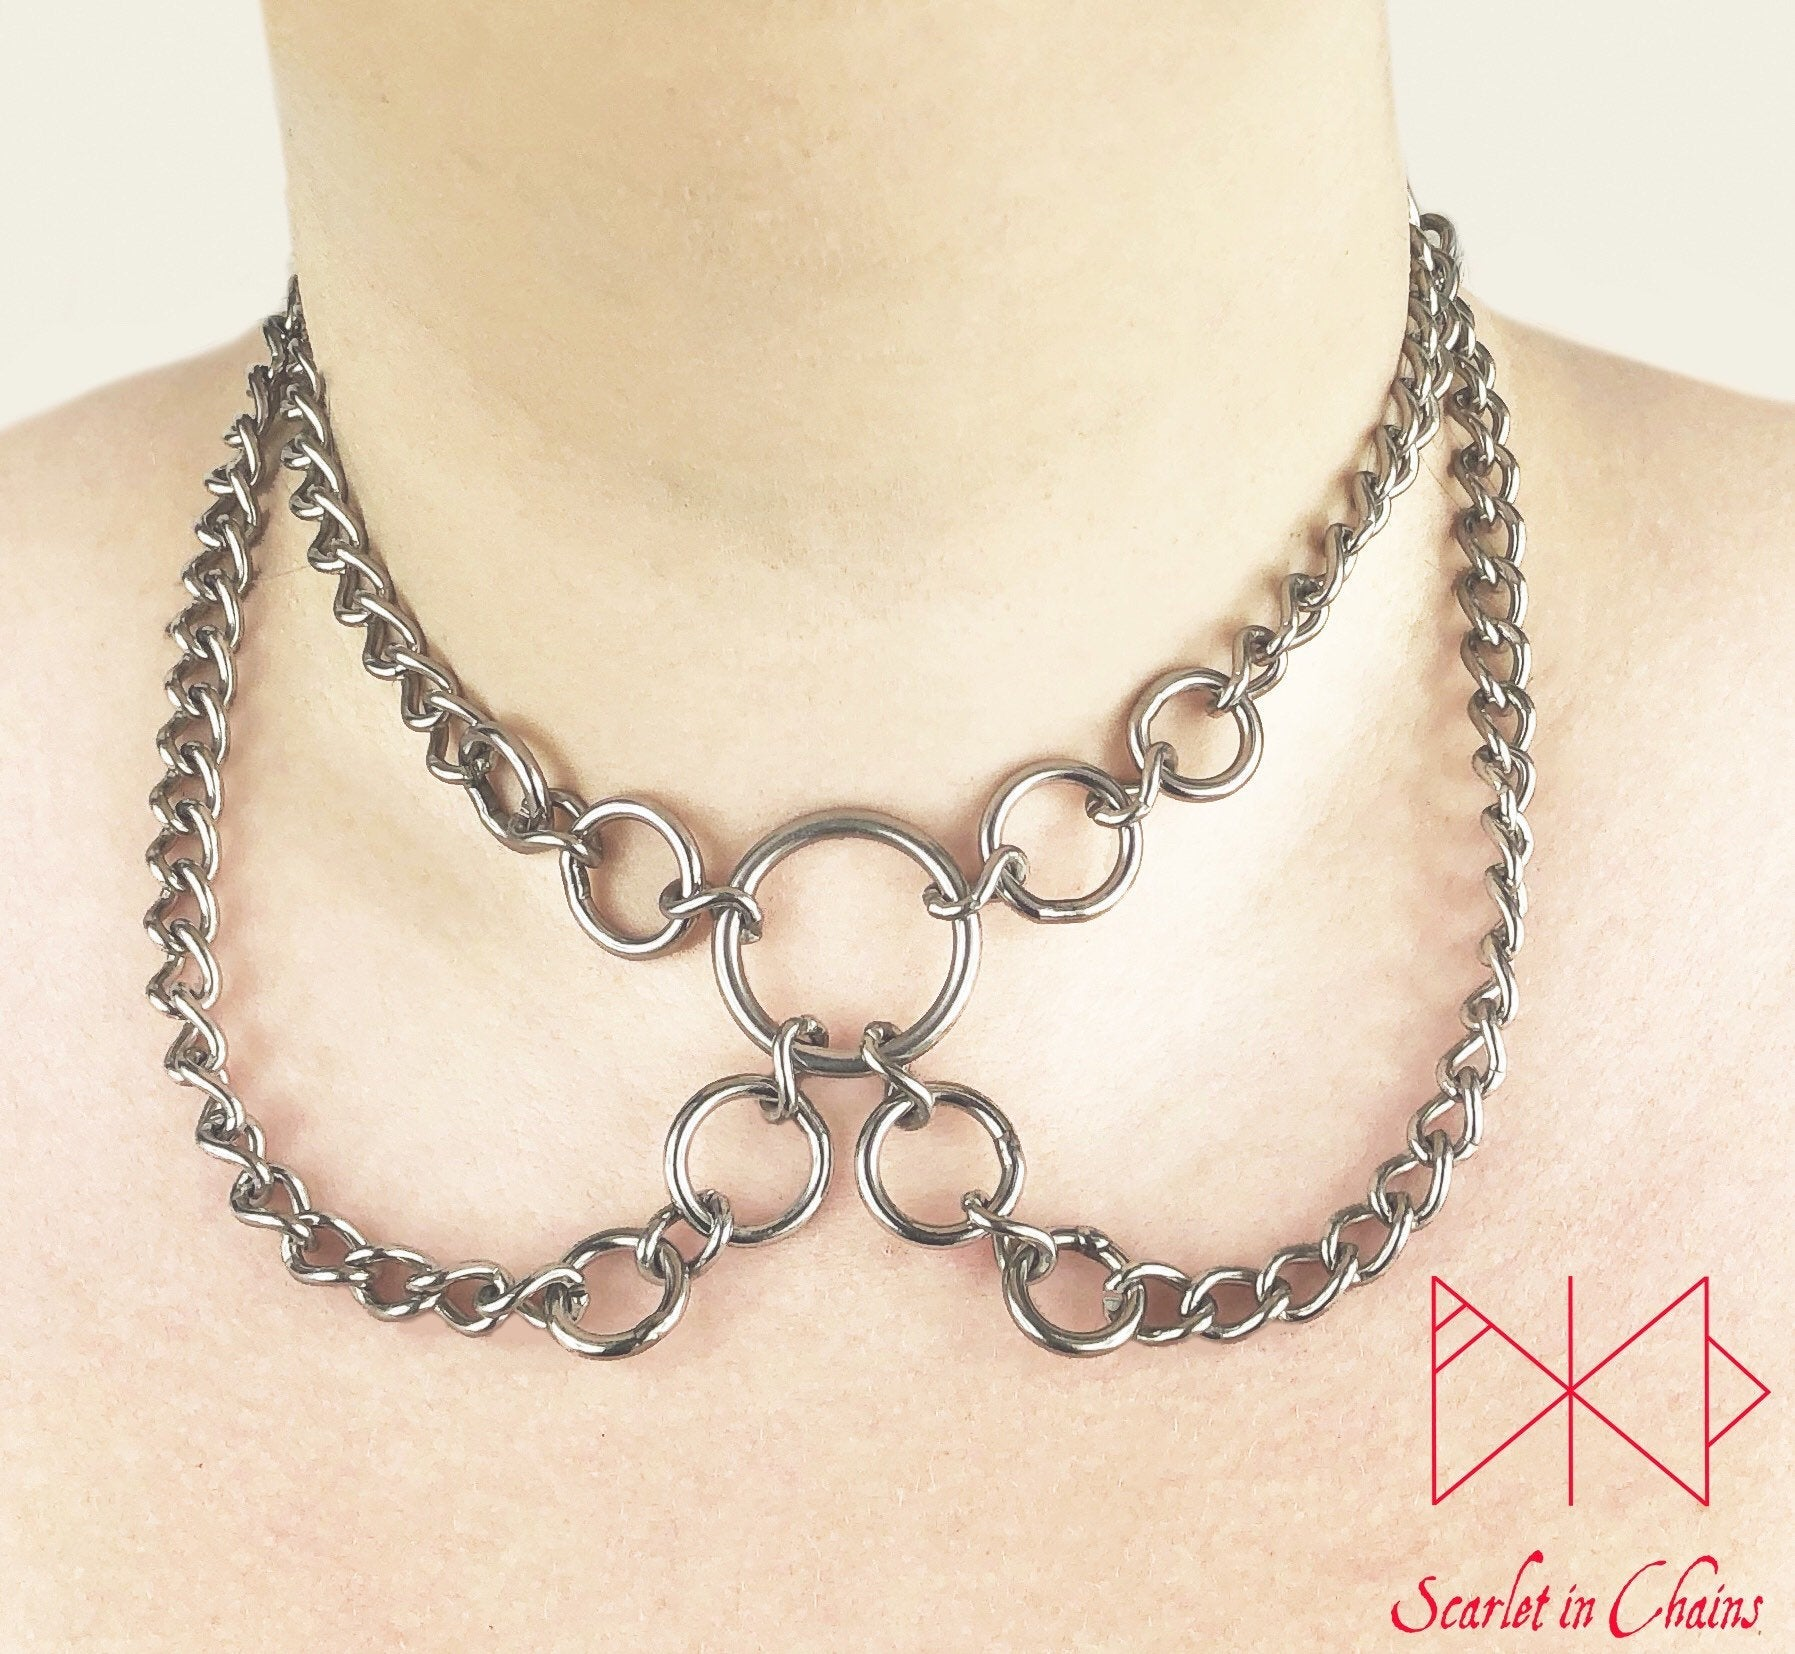 worn shot of synergy collar, stainless steel chain double layer collar